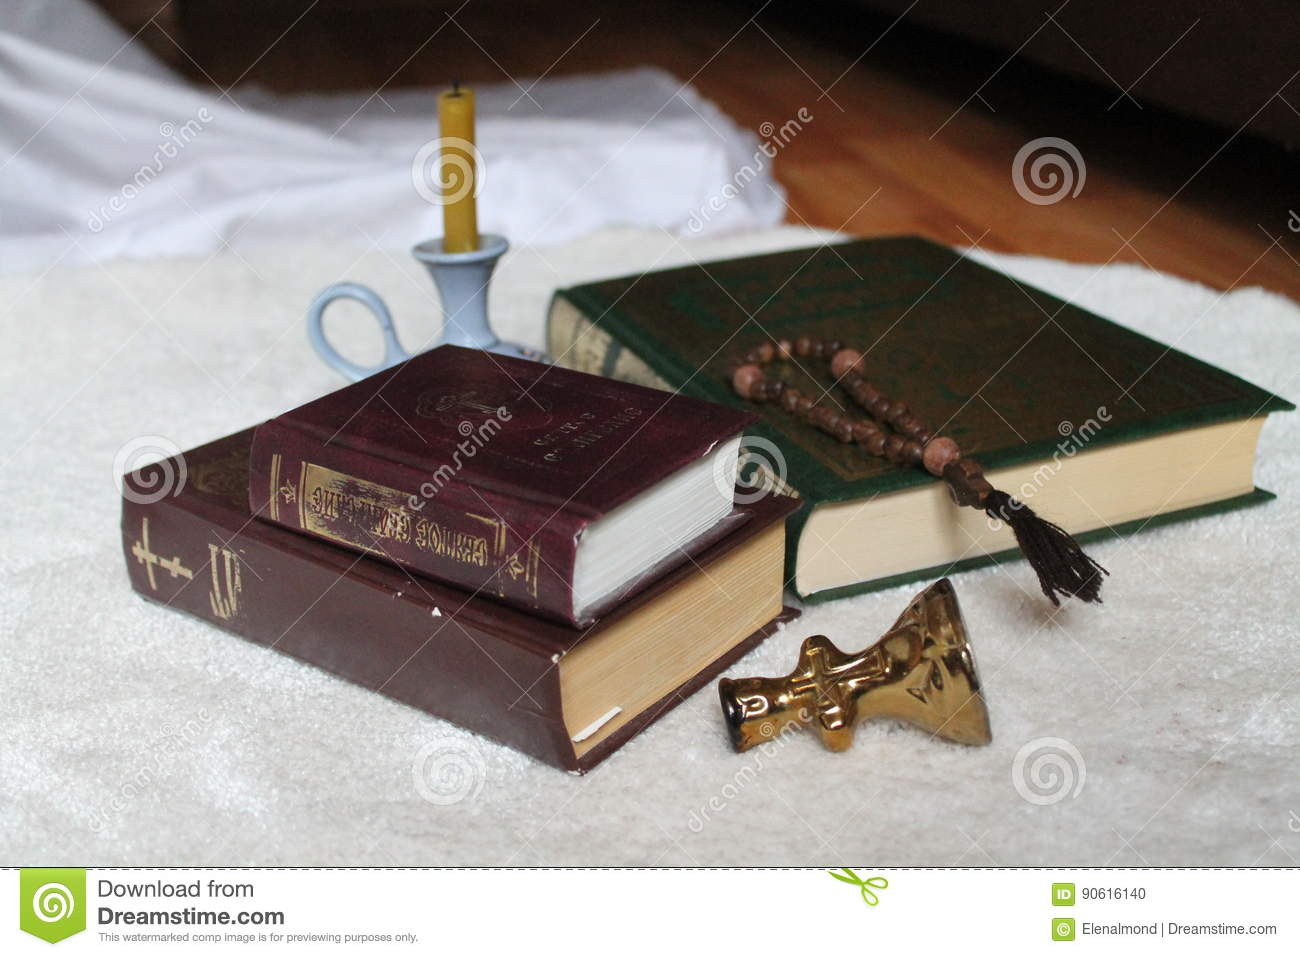 Holy books stock photo  Image of collection, faith, book - 90616140